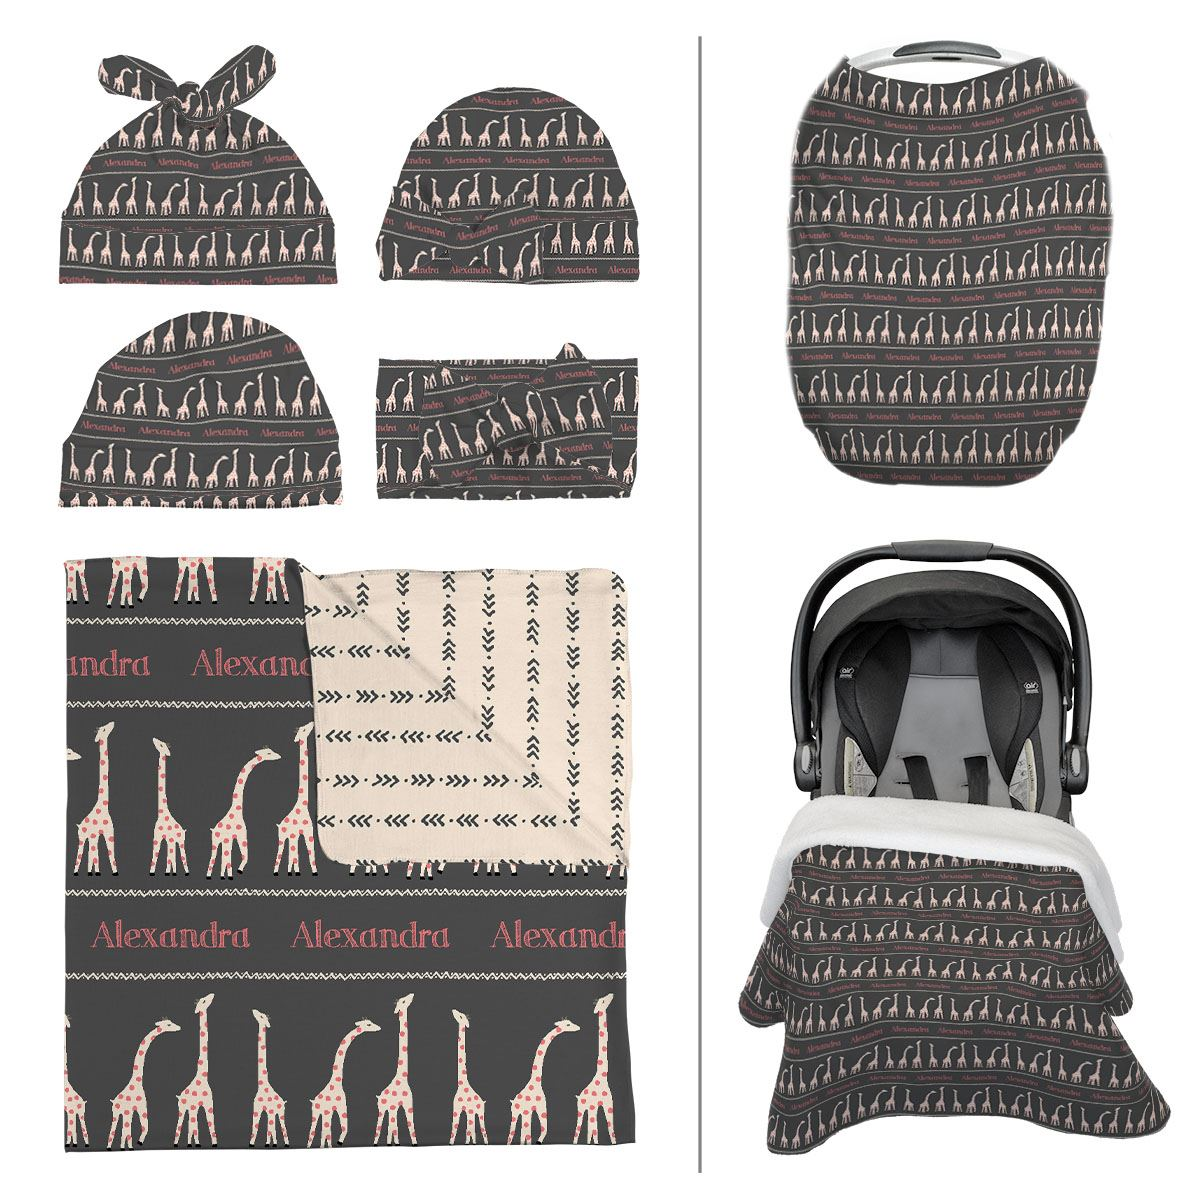 Afia's Gentle Giraffe | Take Me Home Bundle